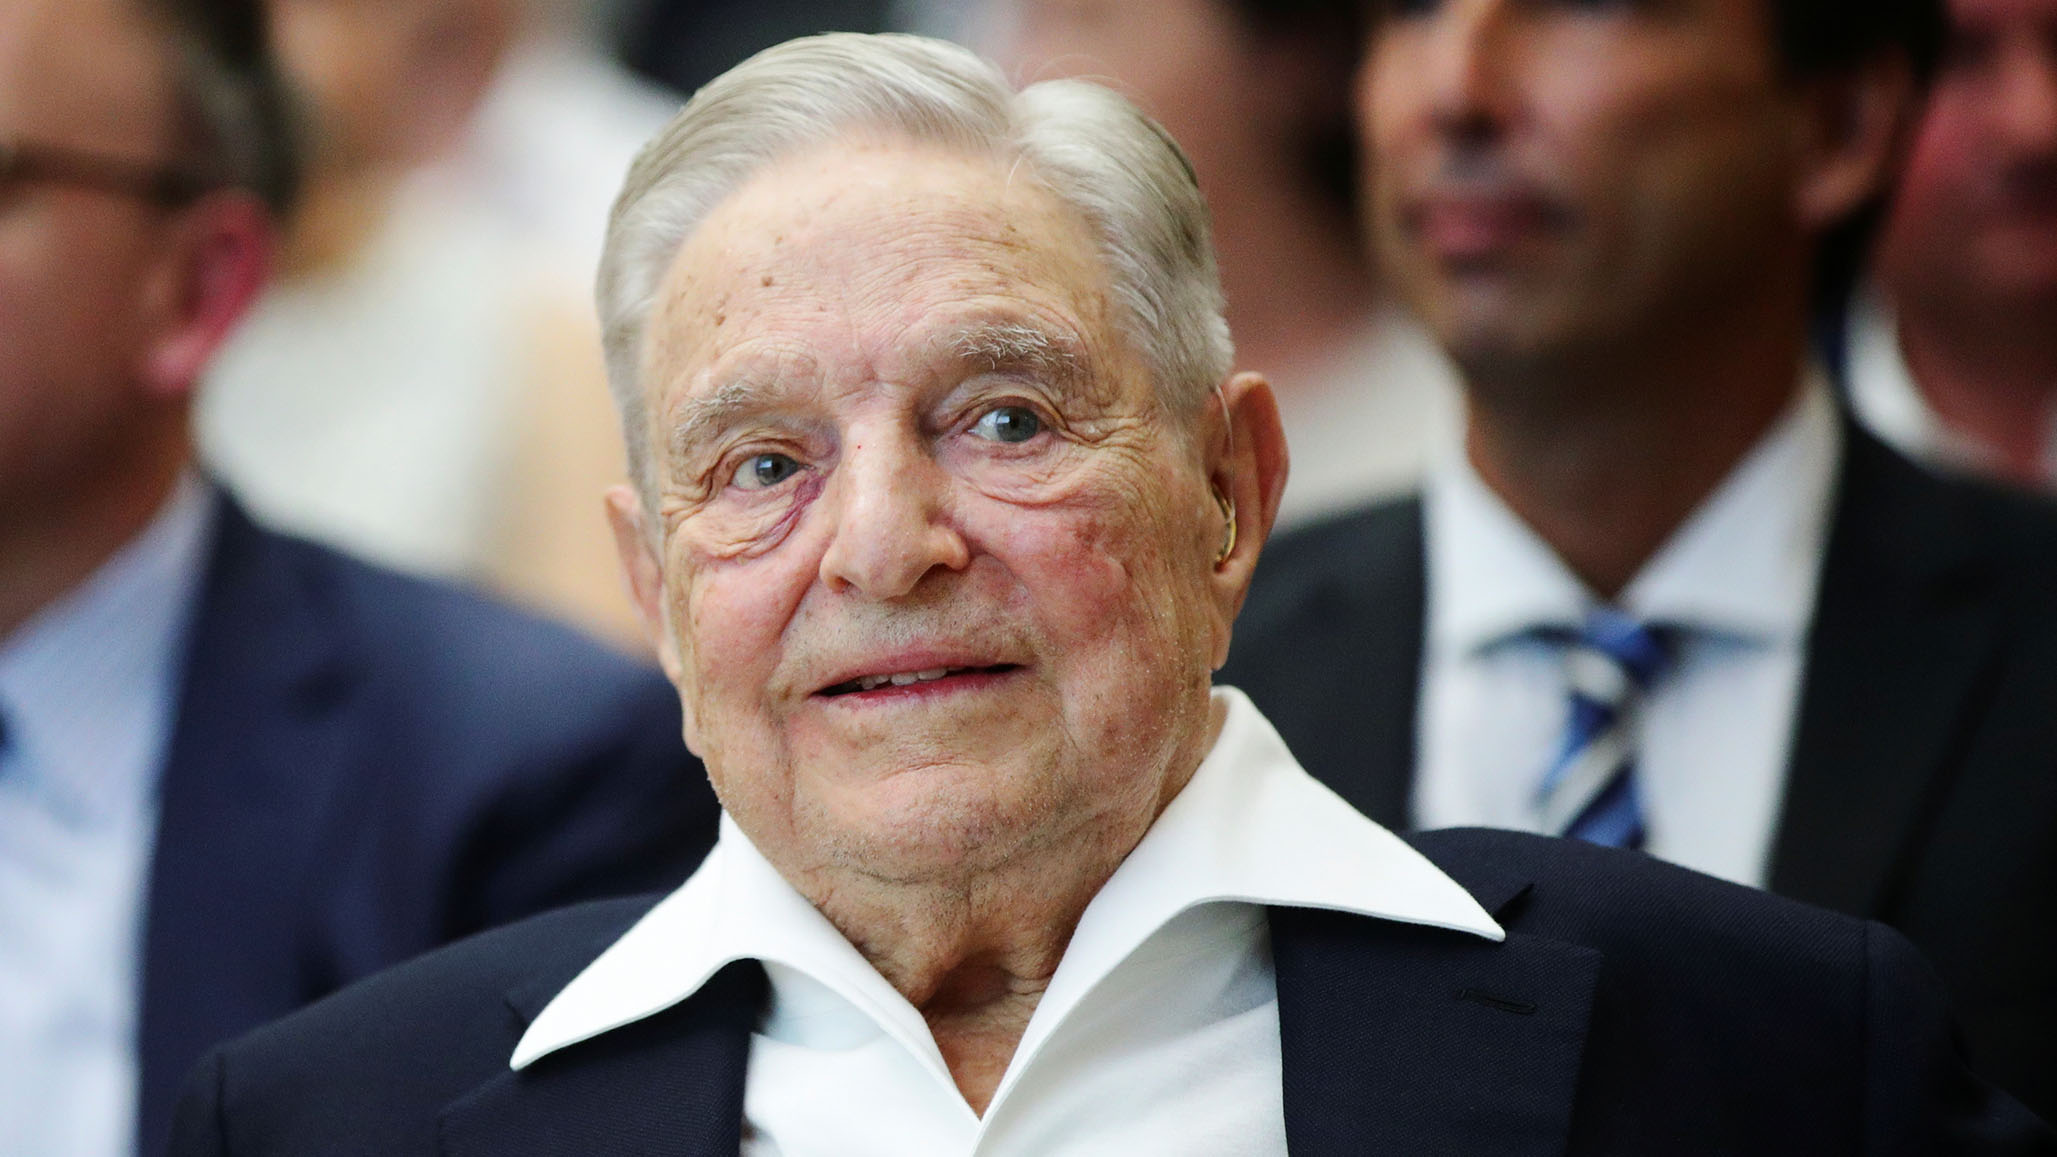 'Very Concerned' George Soros Claims Facebook 'Will Work Together to Re-Elect Trump'